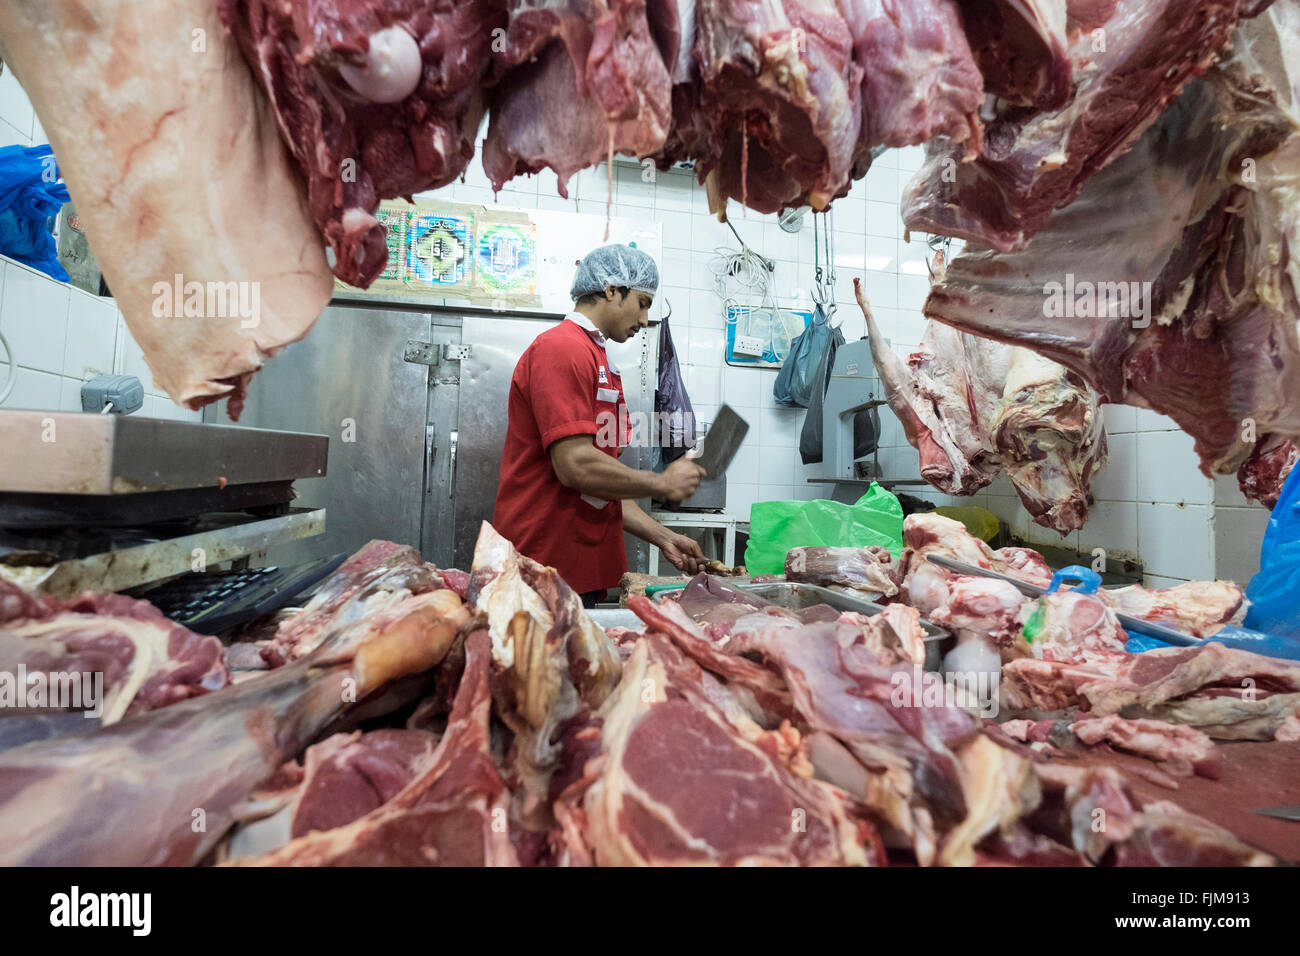 Butcher working in Dubai meat market in Deira United Arab Emirates - Stock Image